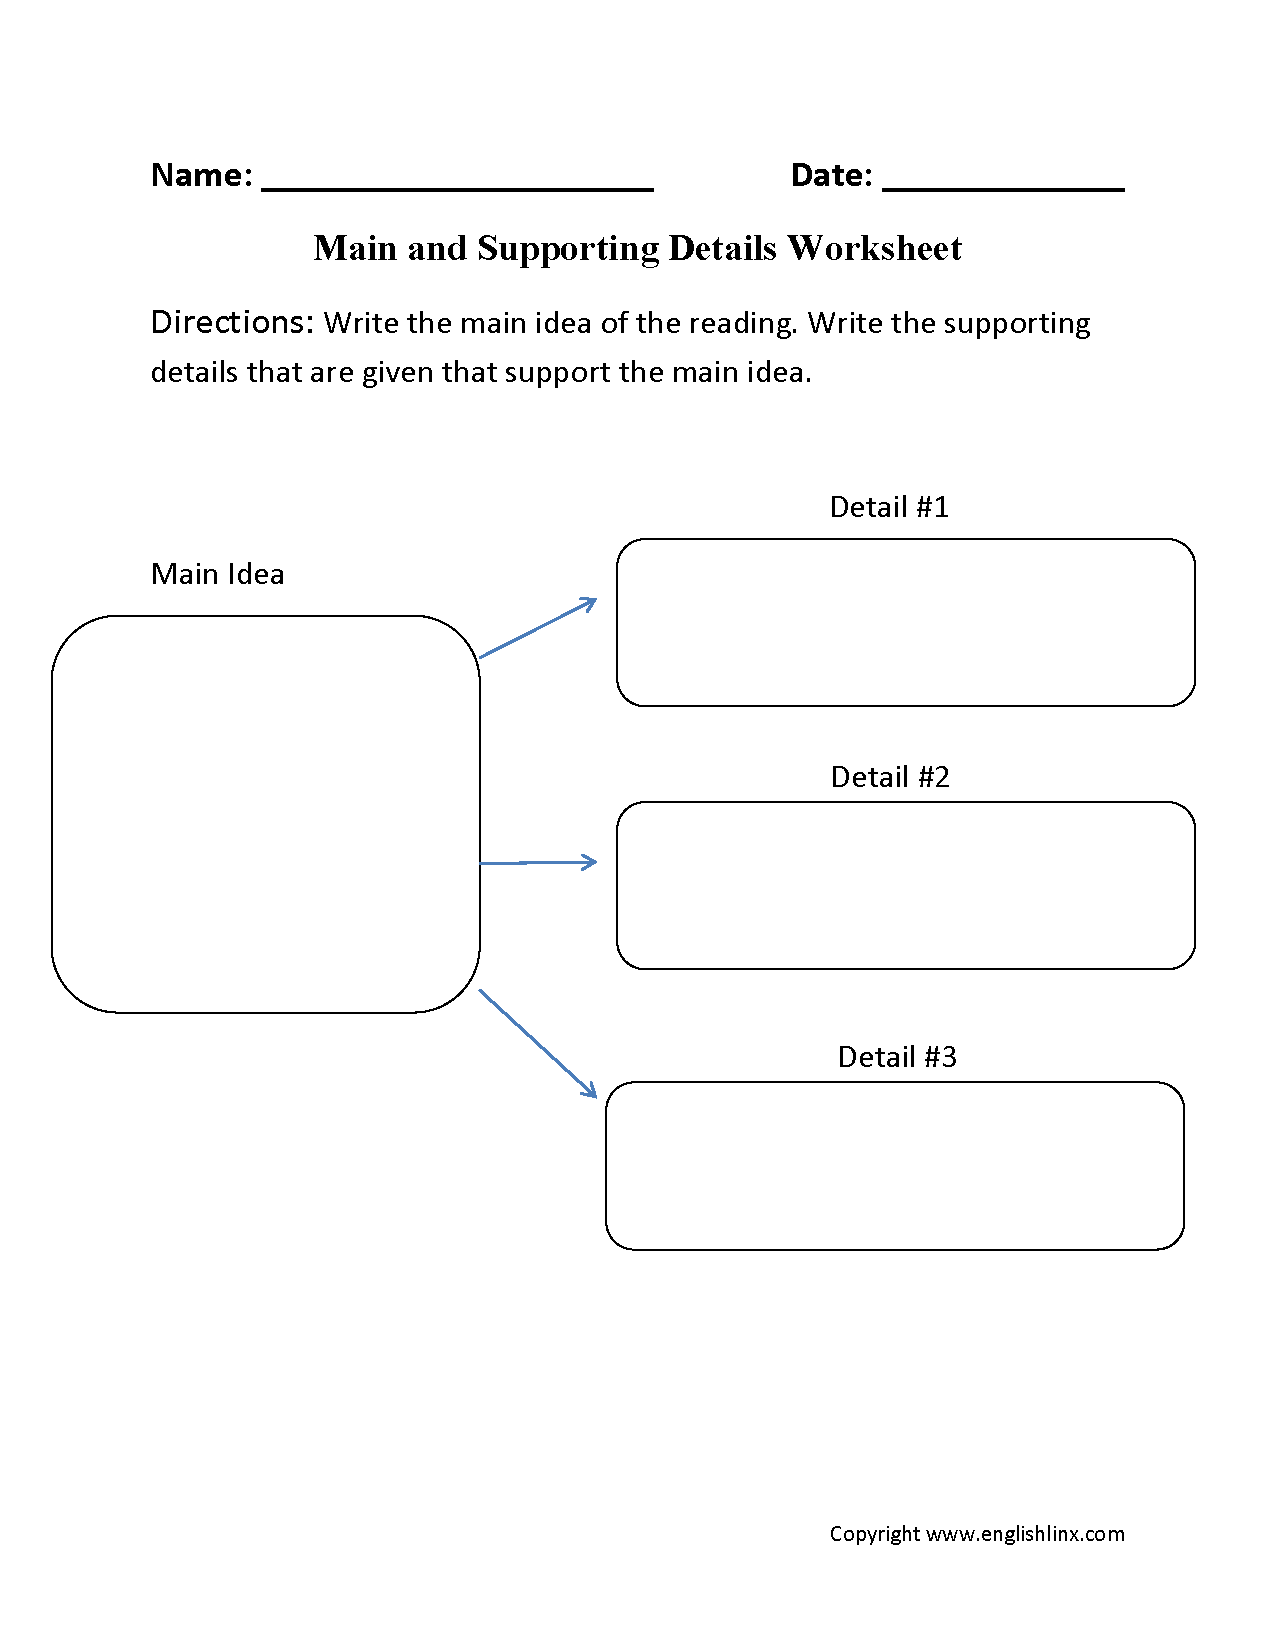 Worksheet Main Idea And Supporting Details Worksheets main idea worksheets and supporting details worksheet worksheet